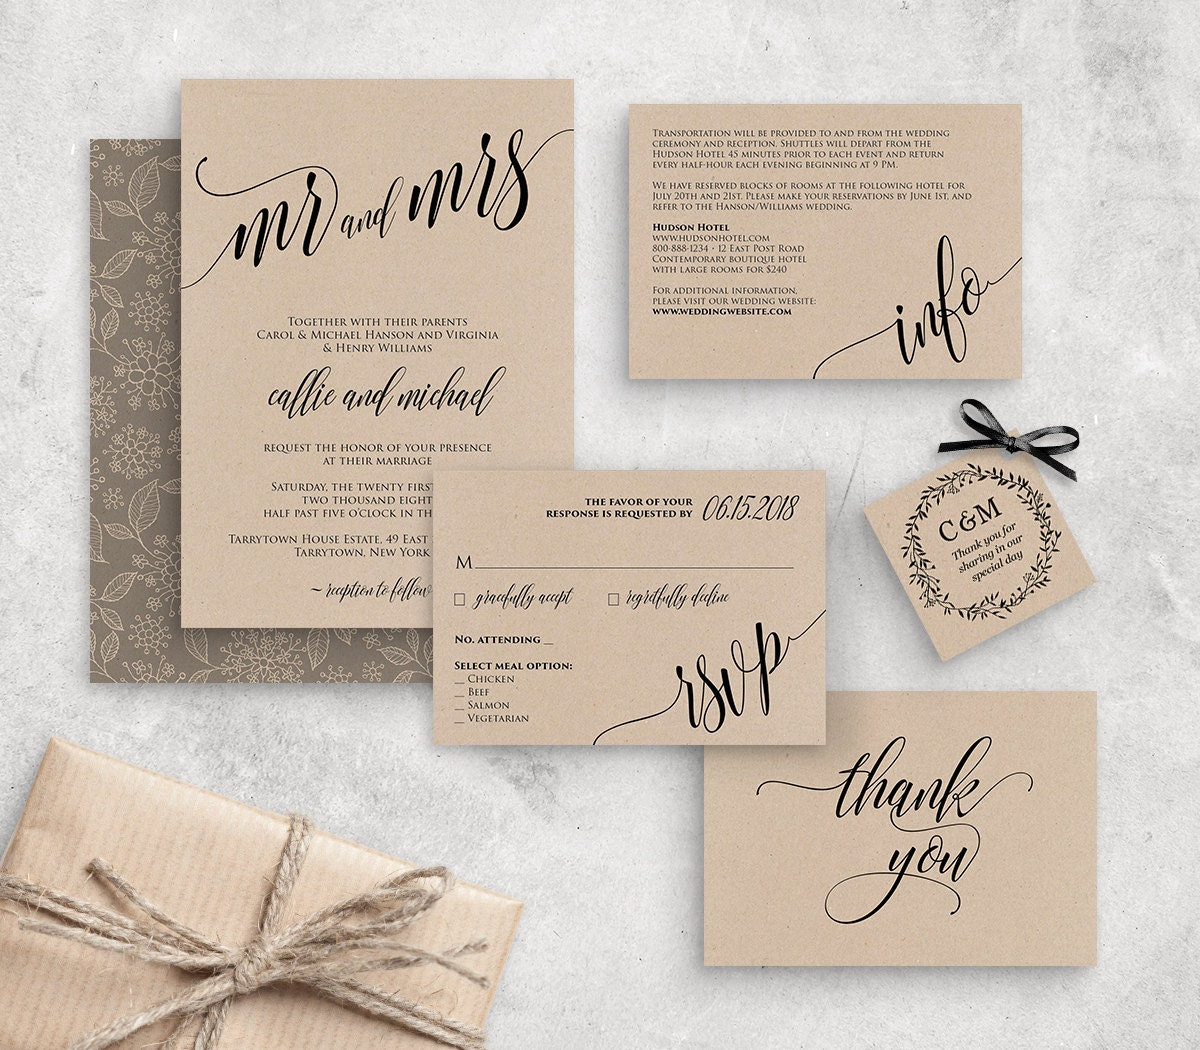 Local Invitation Printing as amazing invitations ideas